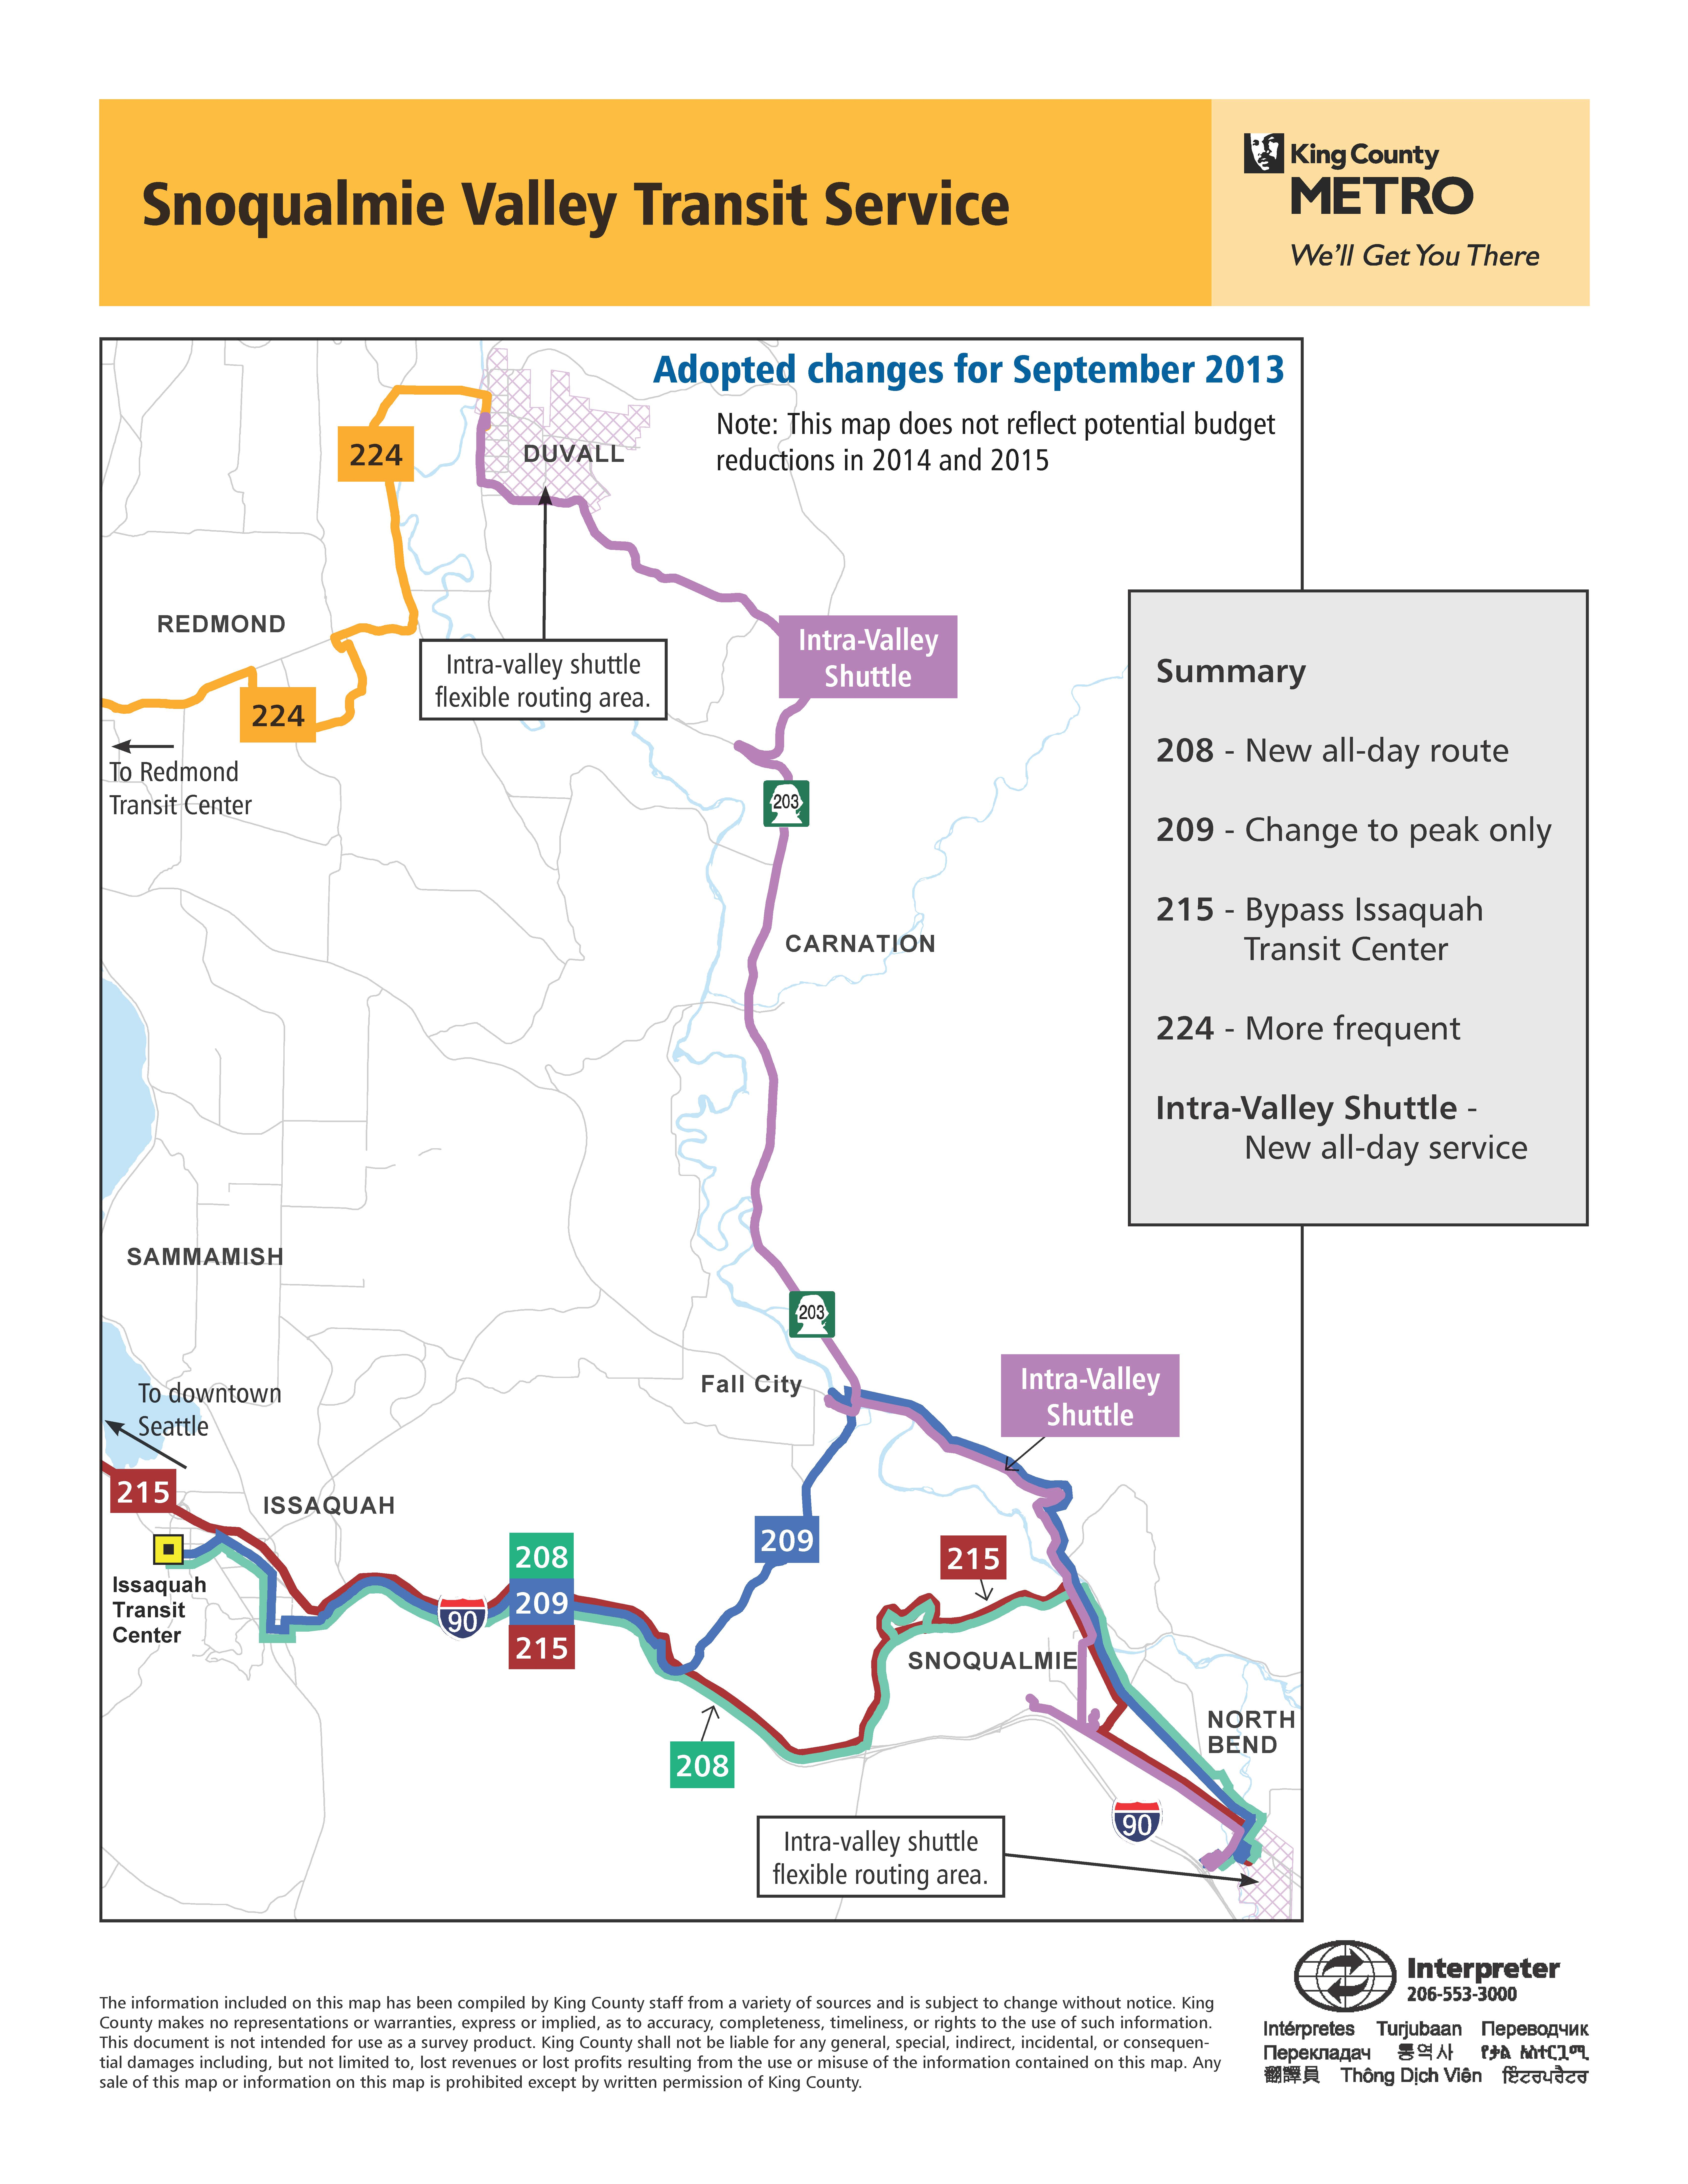 Changes Coming To Snoqualmie Valley Transit Service